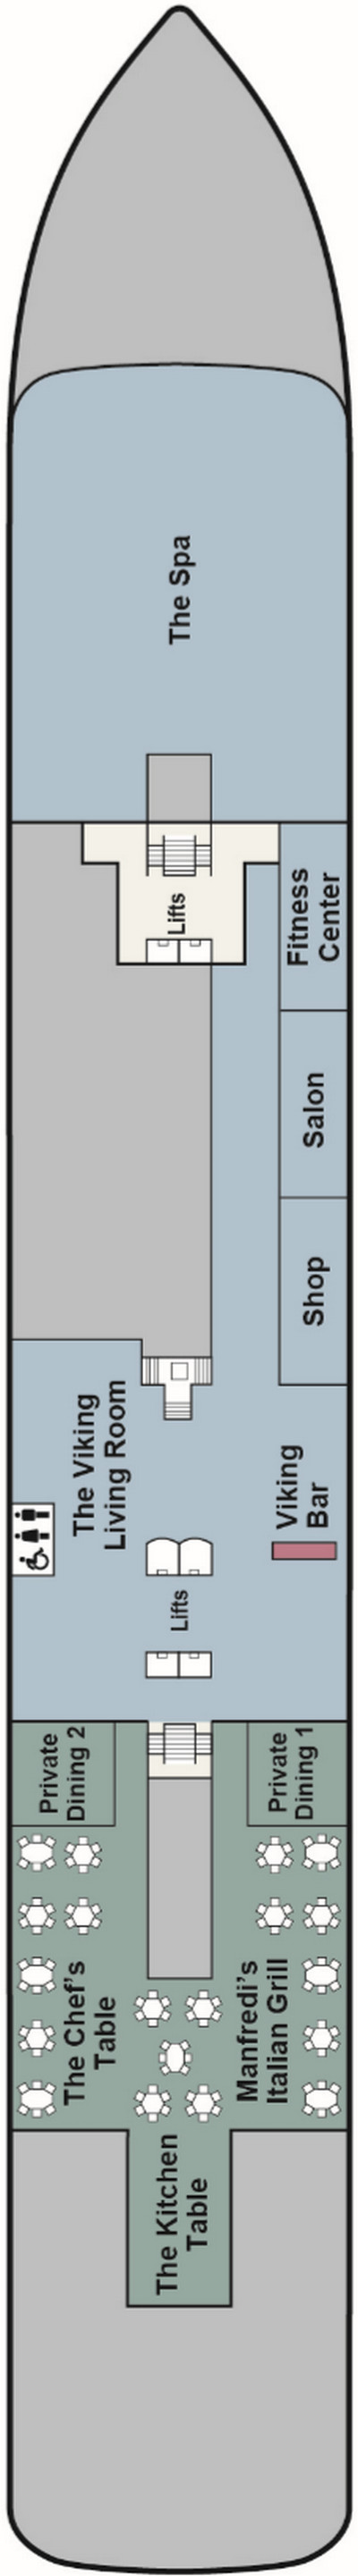 Viking Sky Deck 1 layout